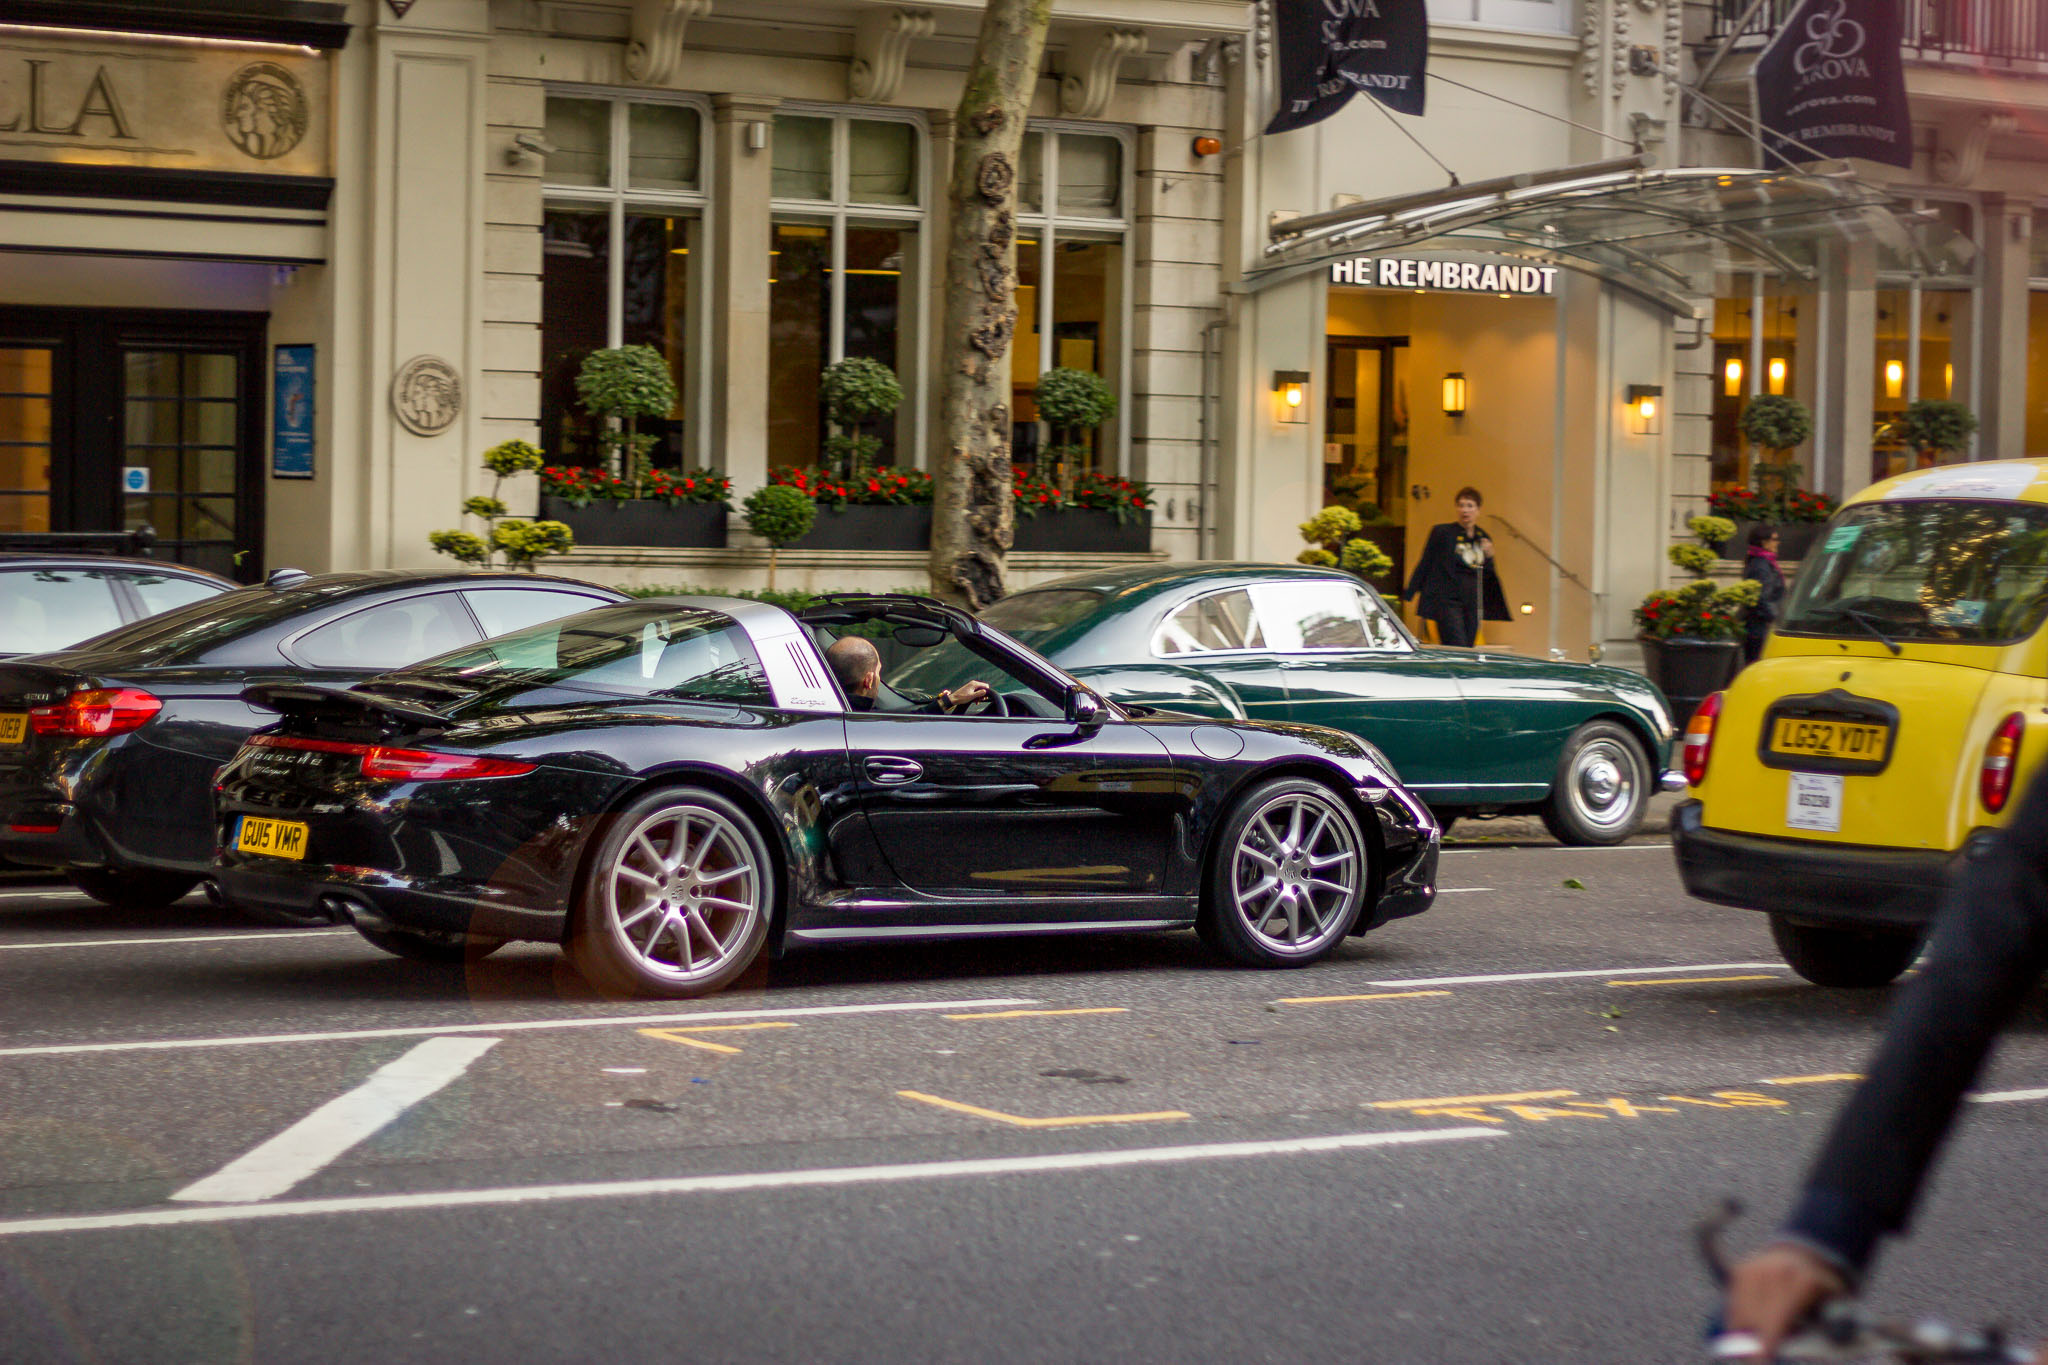 Knightsbridge-Car-Spotting-London-3.jpg